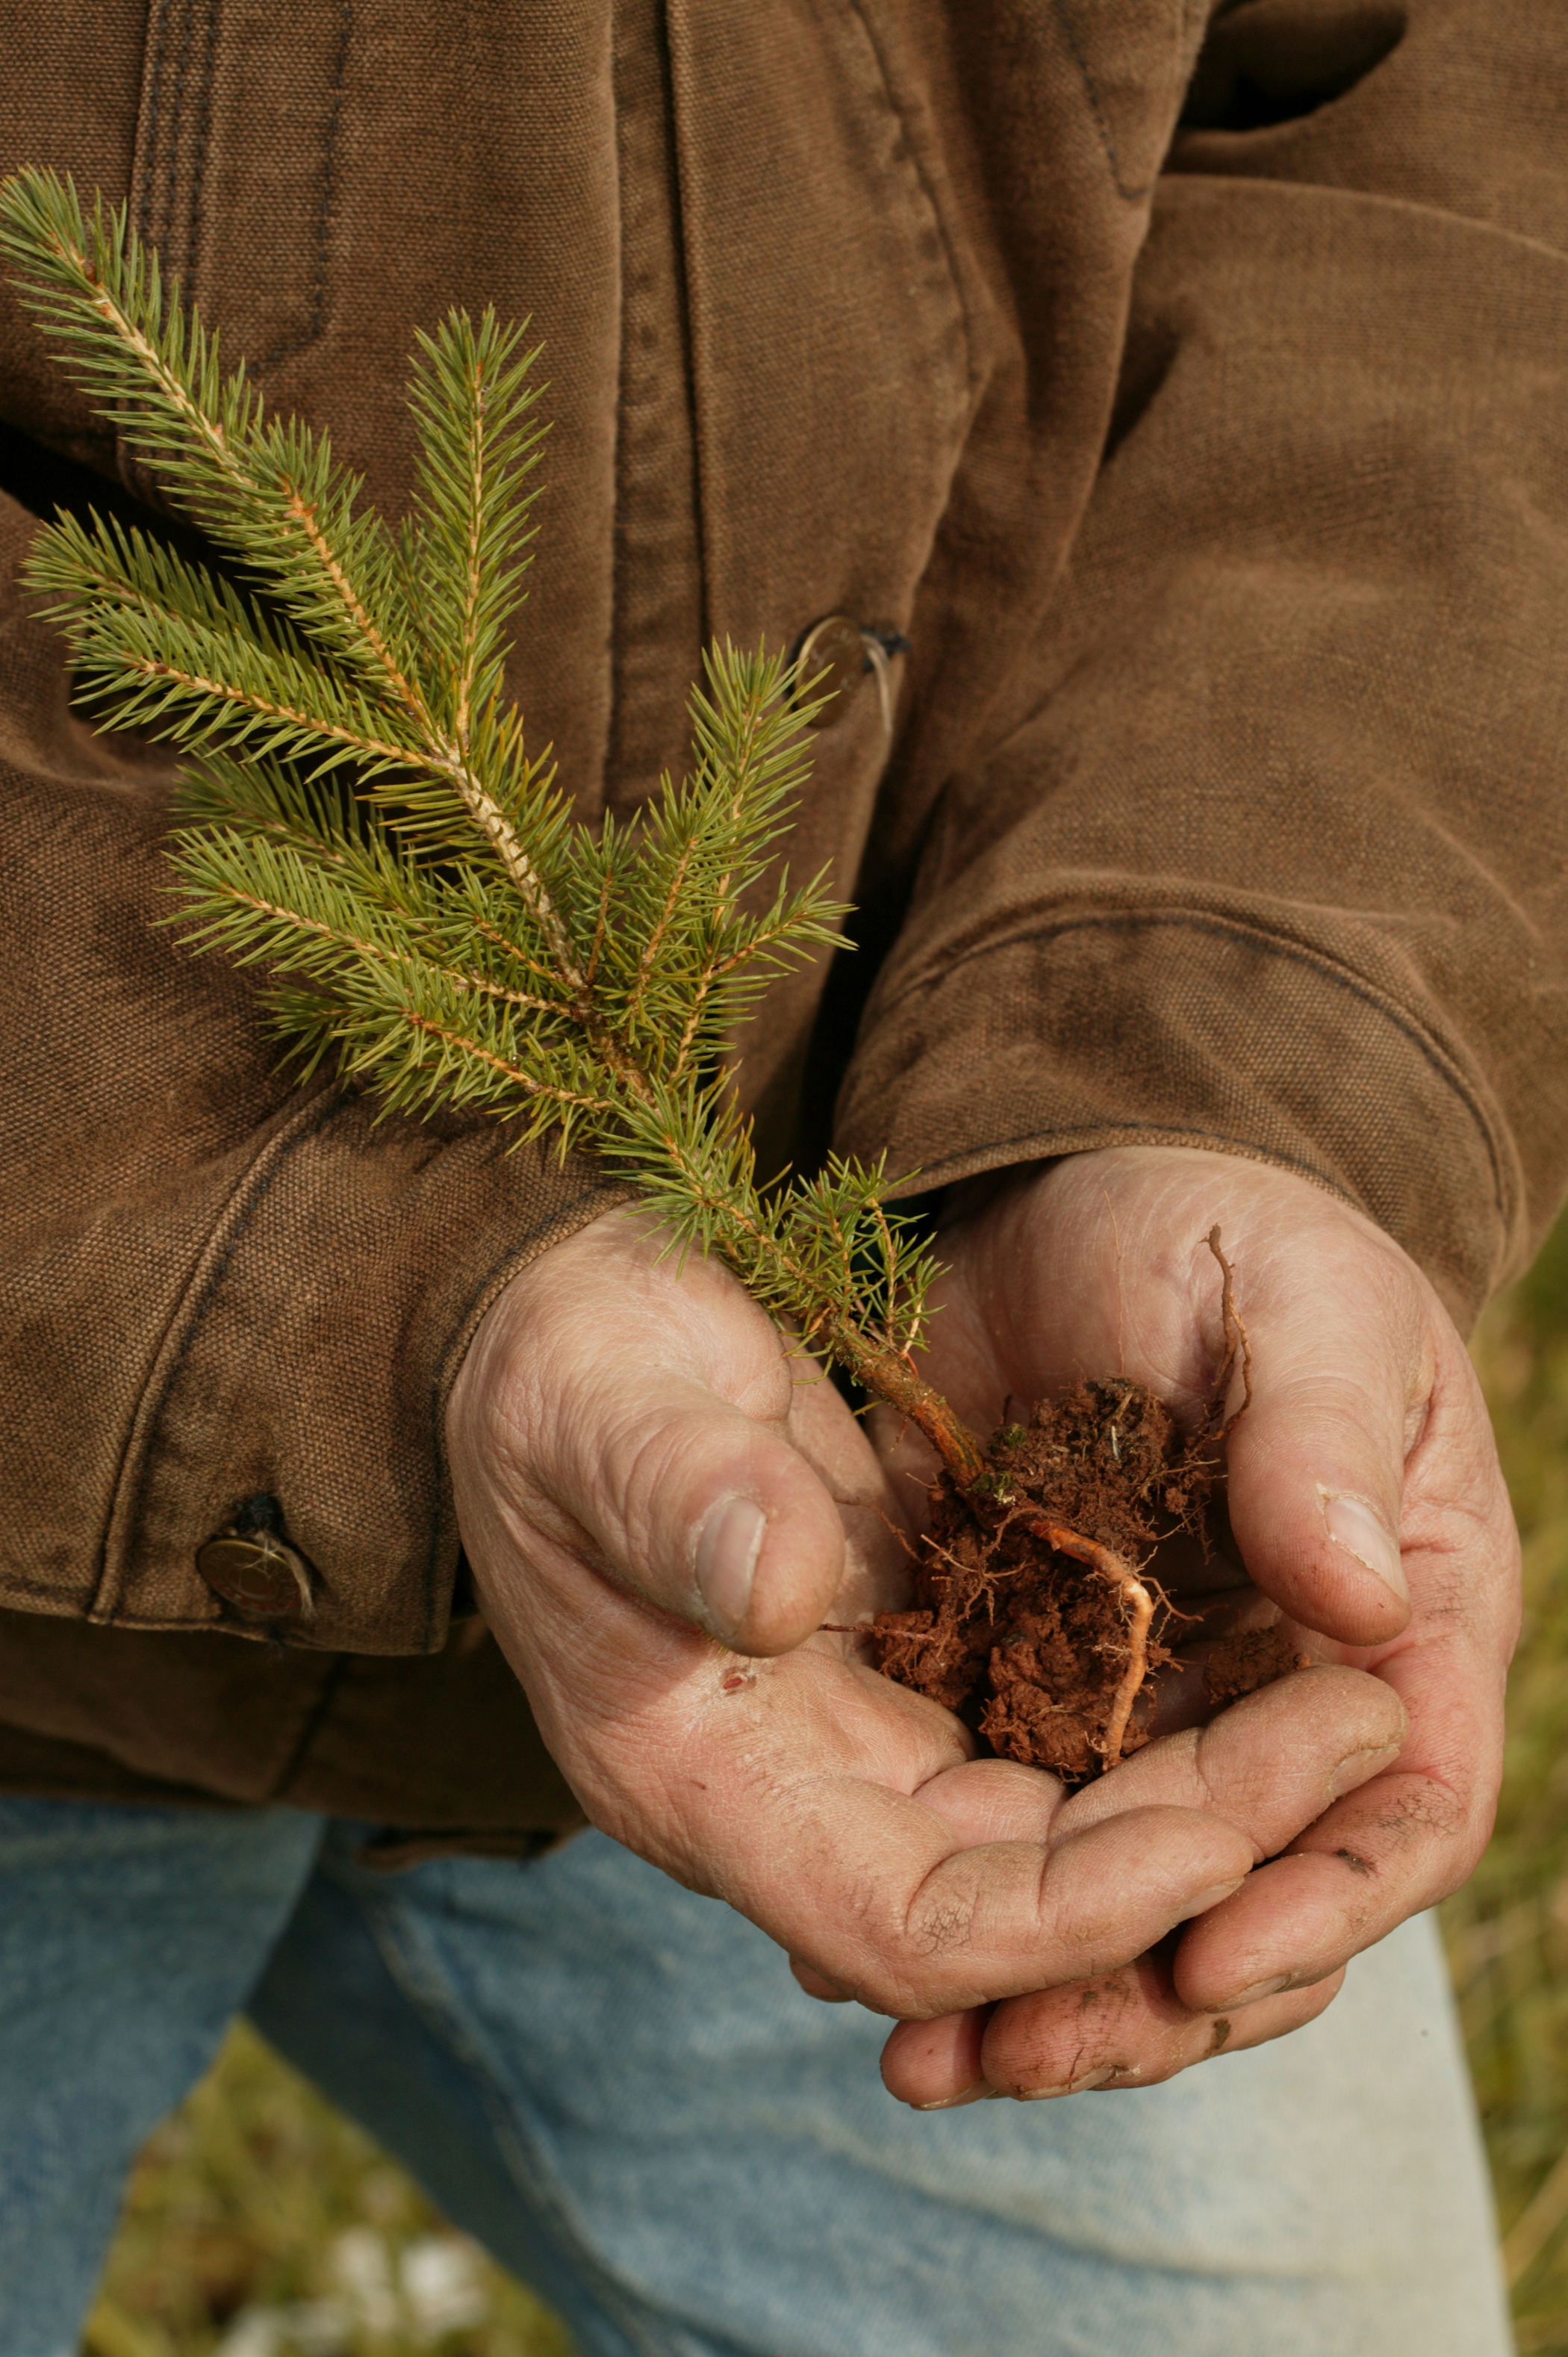 Photograph of hands holding a evergreen seedling ready for planting.